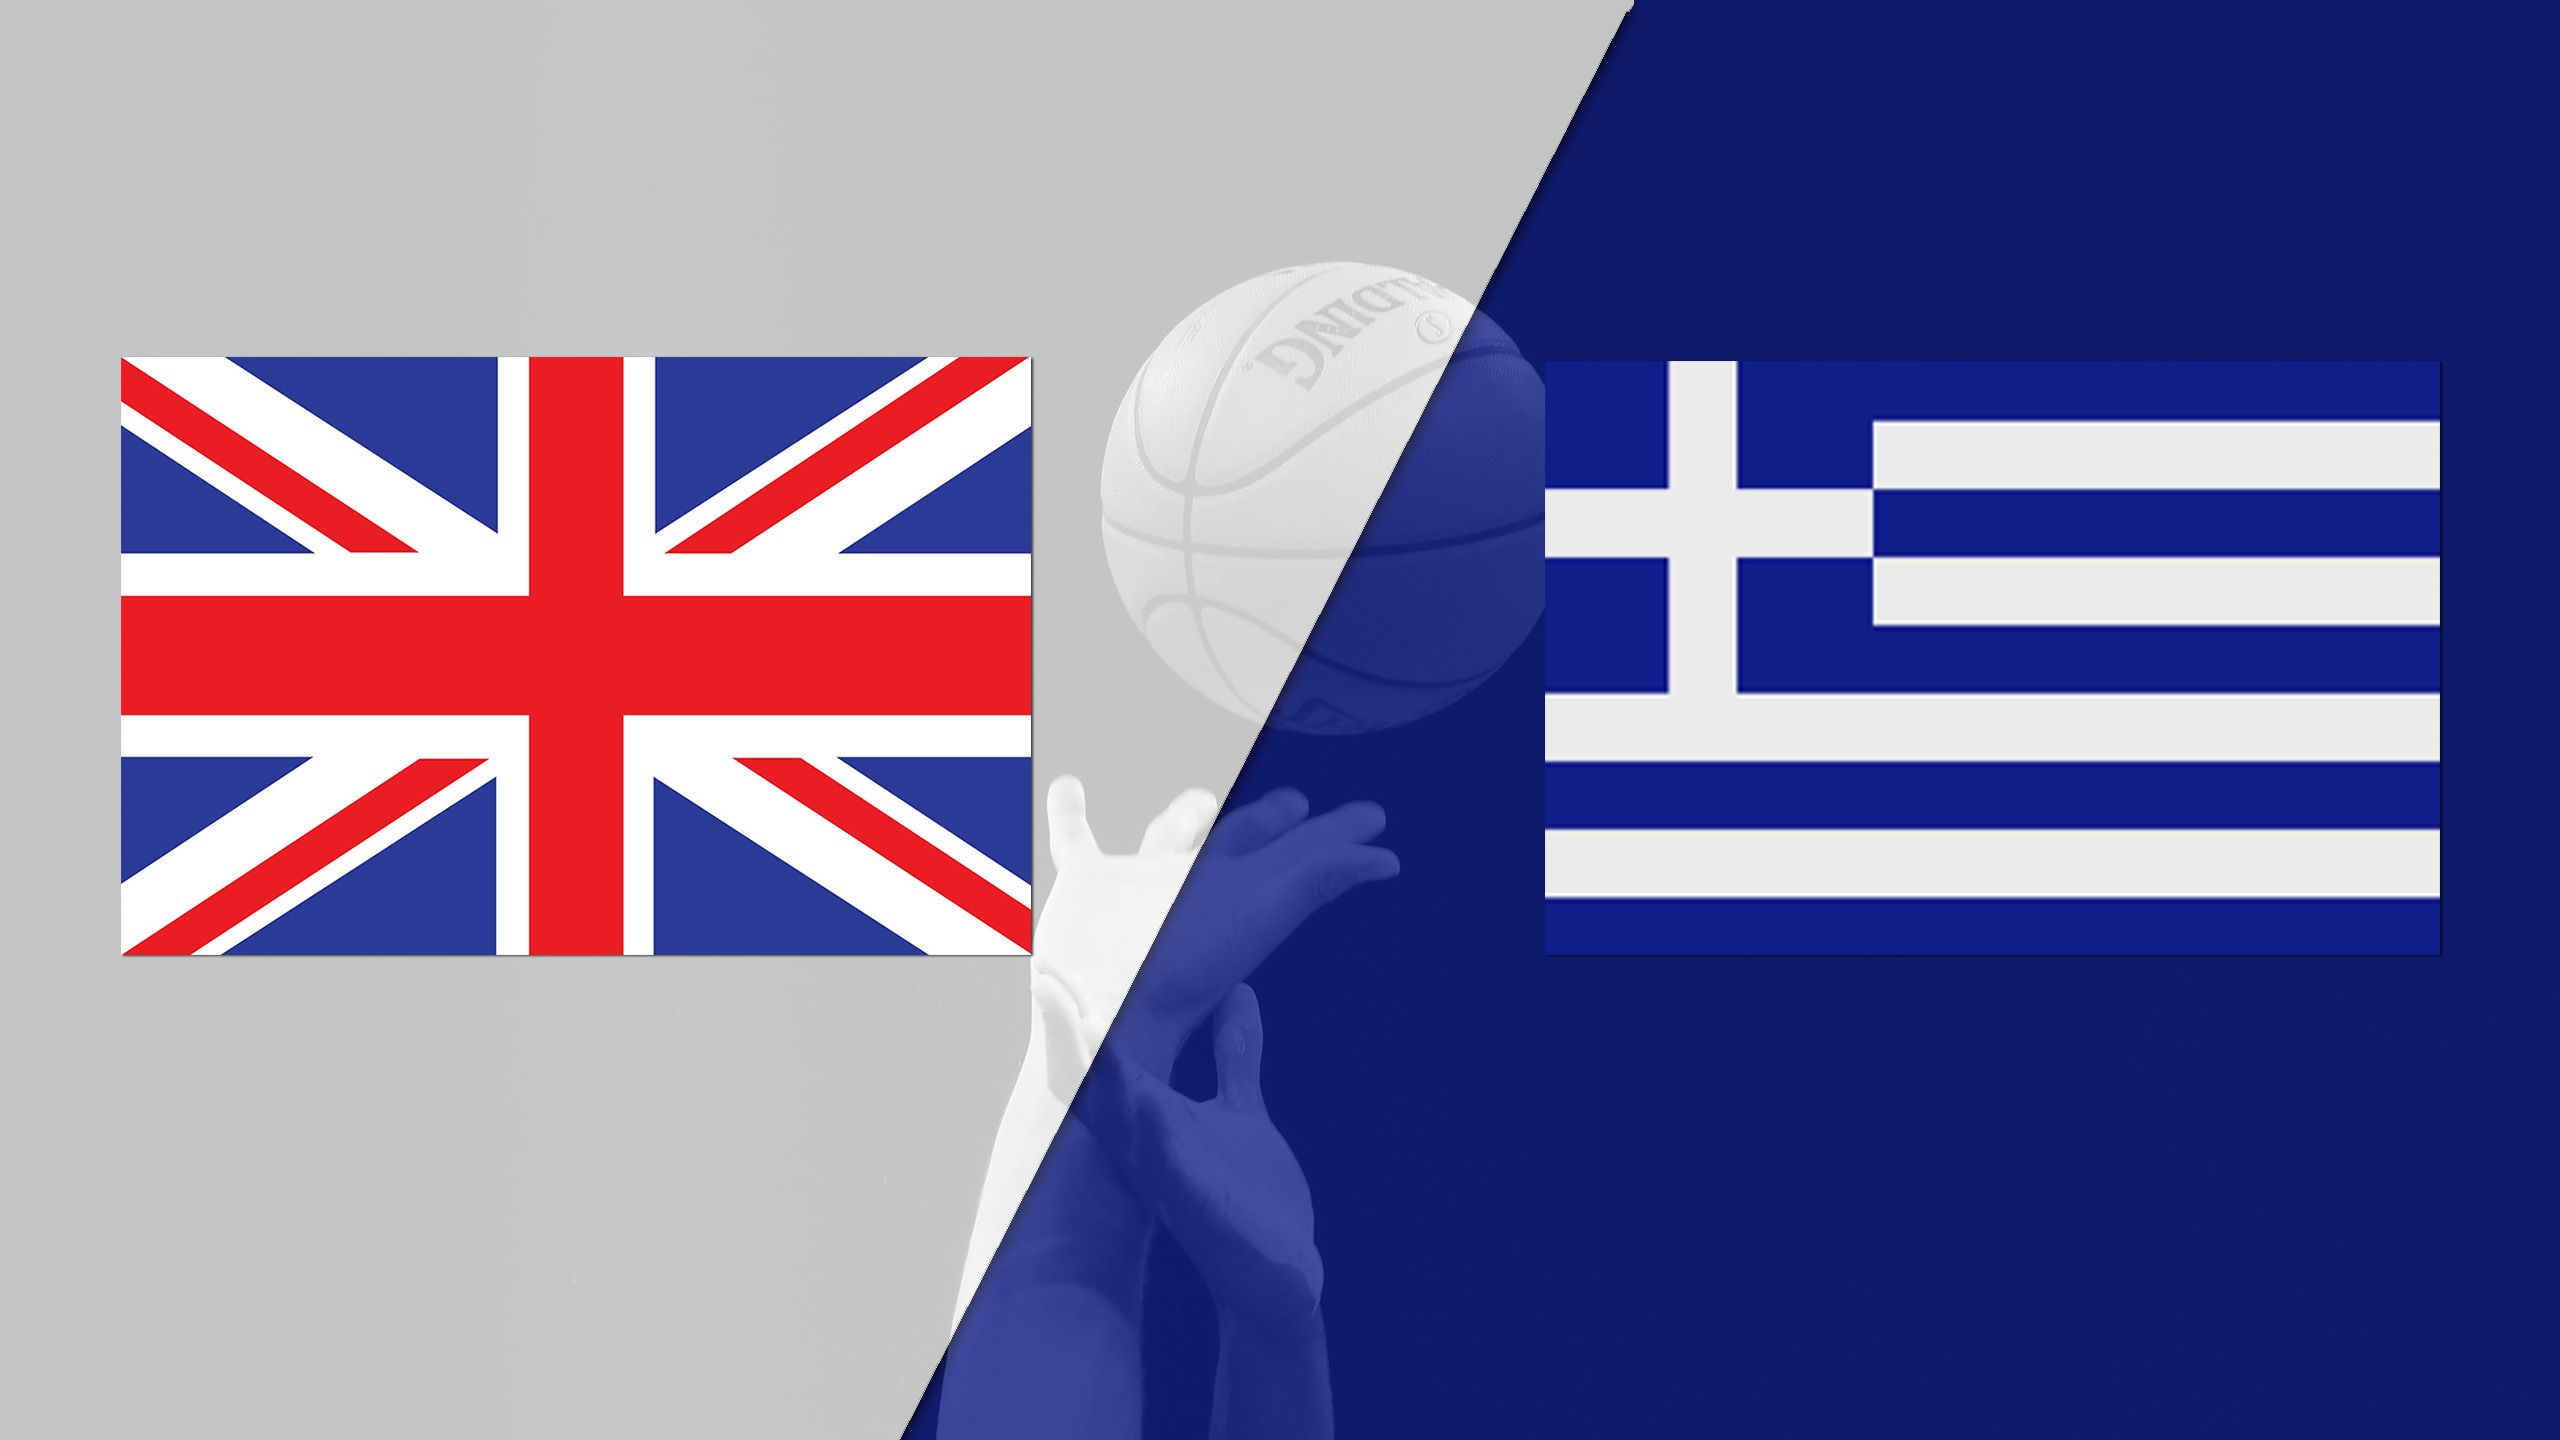 Great Britain vs. Greece (FIBA World Cup 2019 Qualifier)